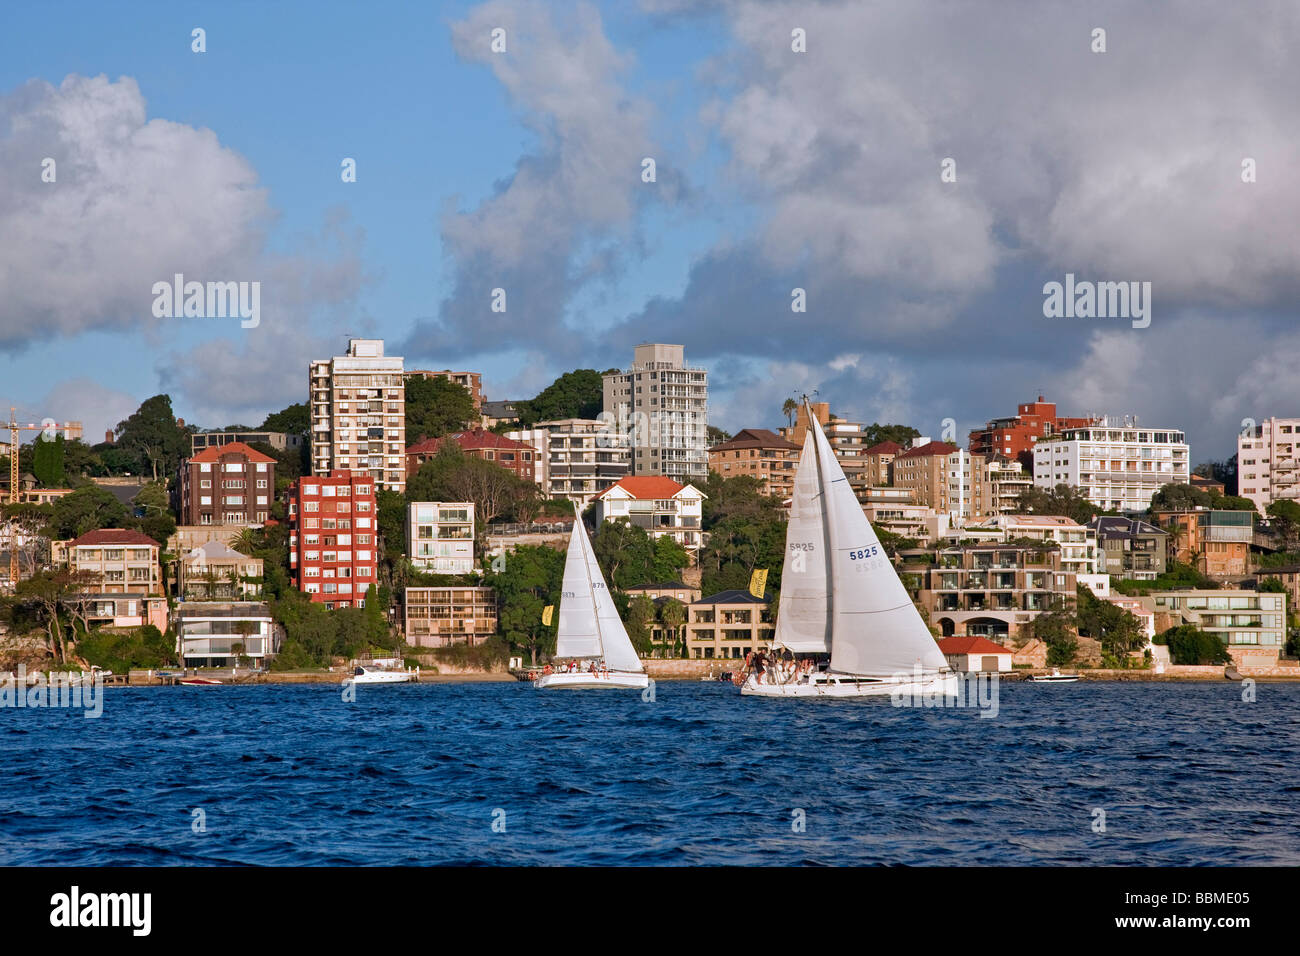 Australia New South Wales. Sailing in the late afternoon off Double Bay in Sydney harbour. - Stock Image